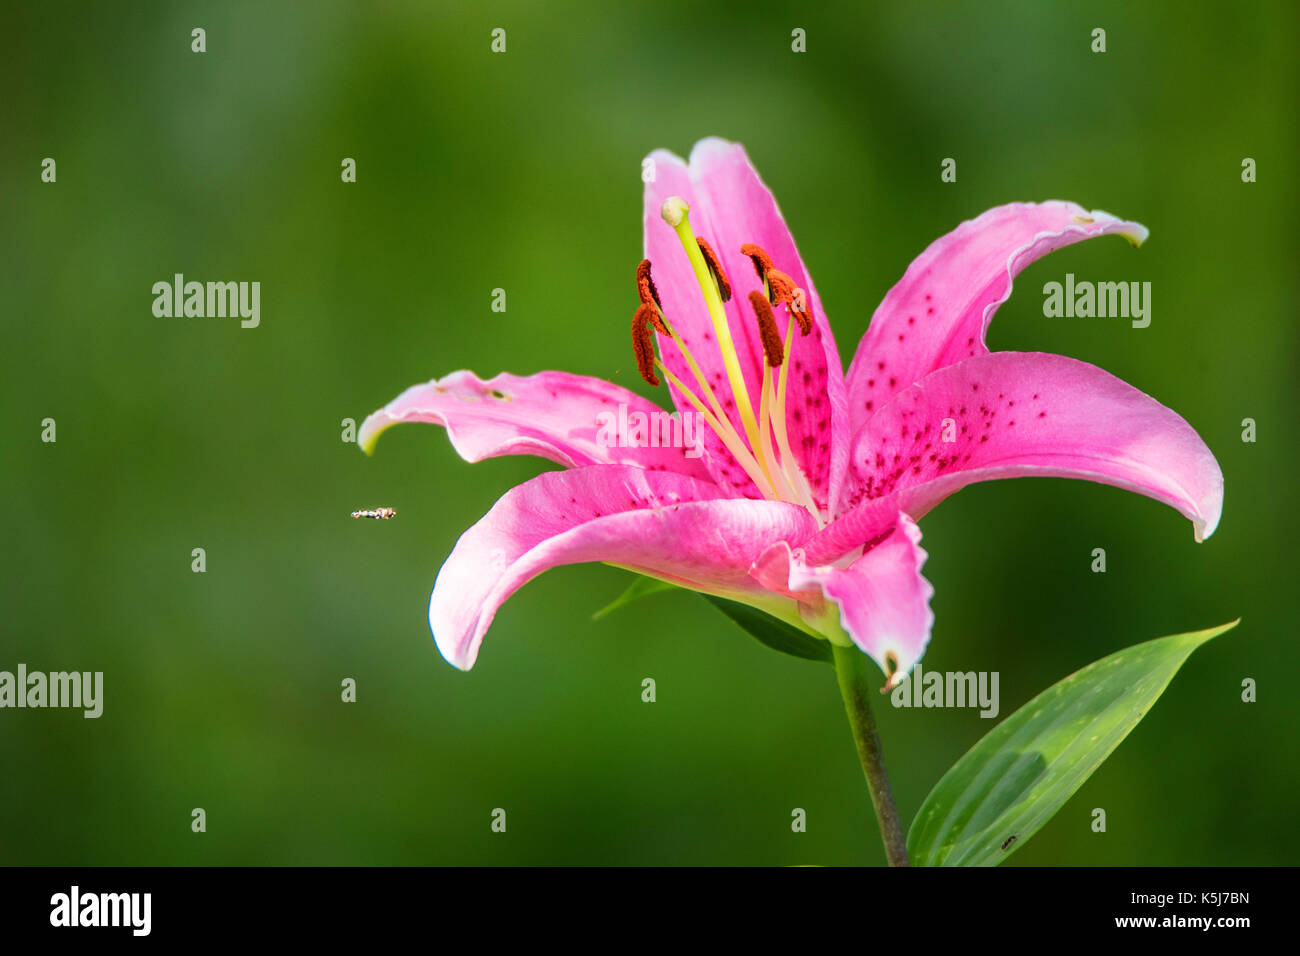 Close up pink Lily or Lilium flower Stock Photo